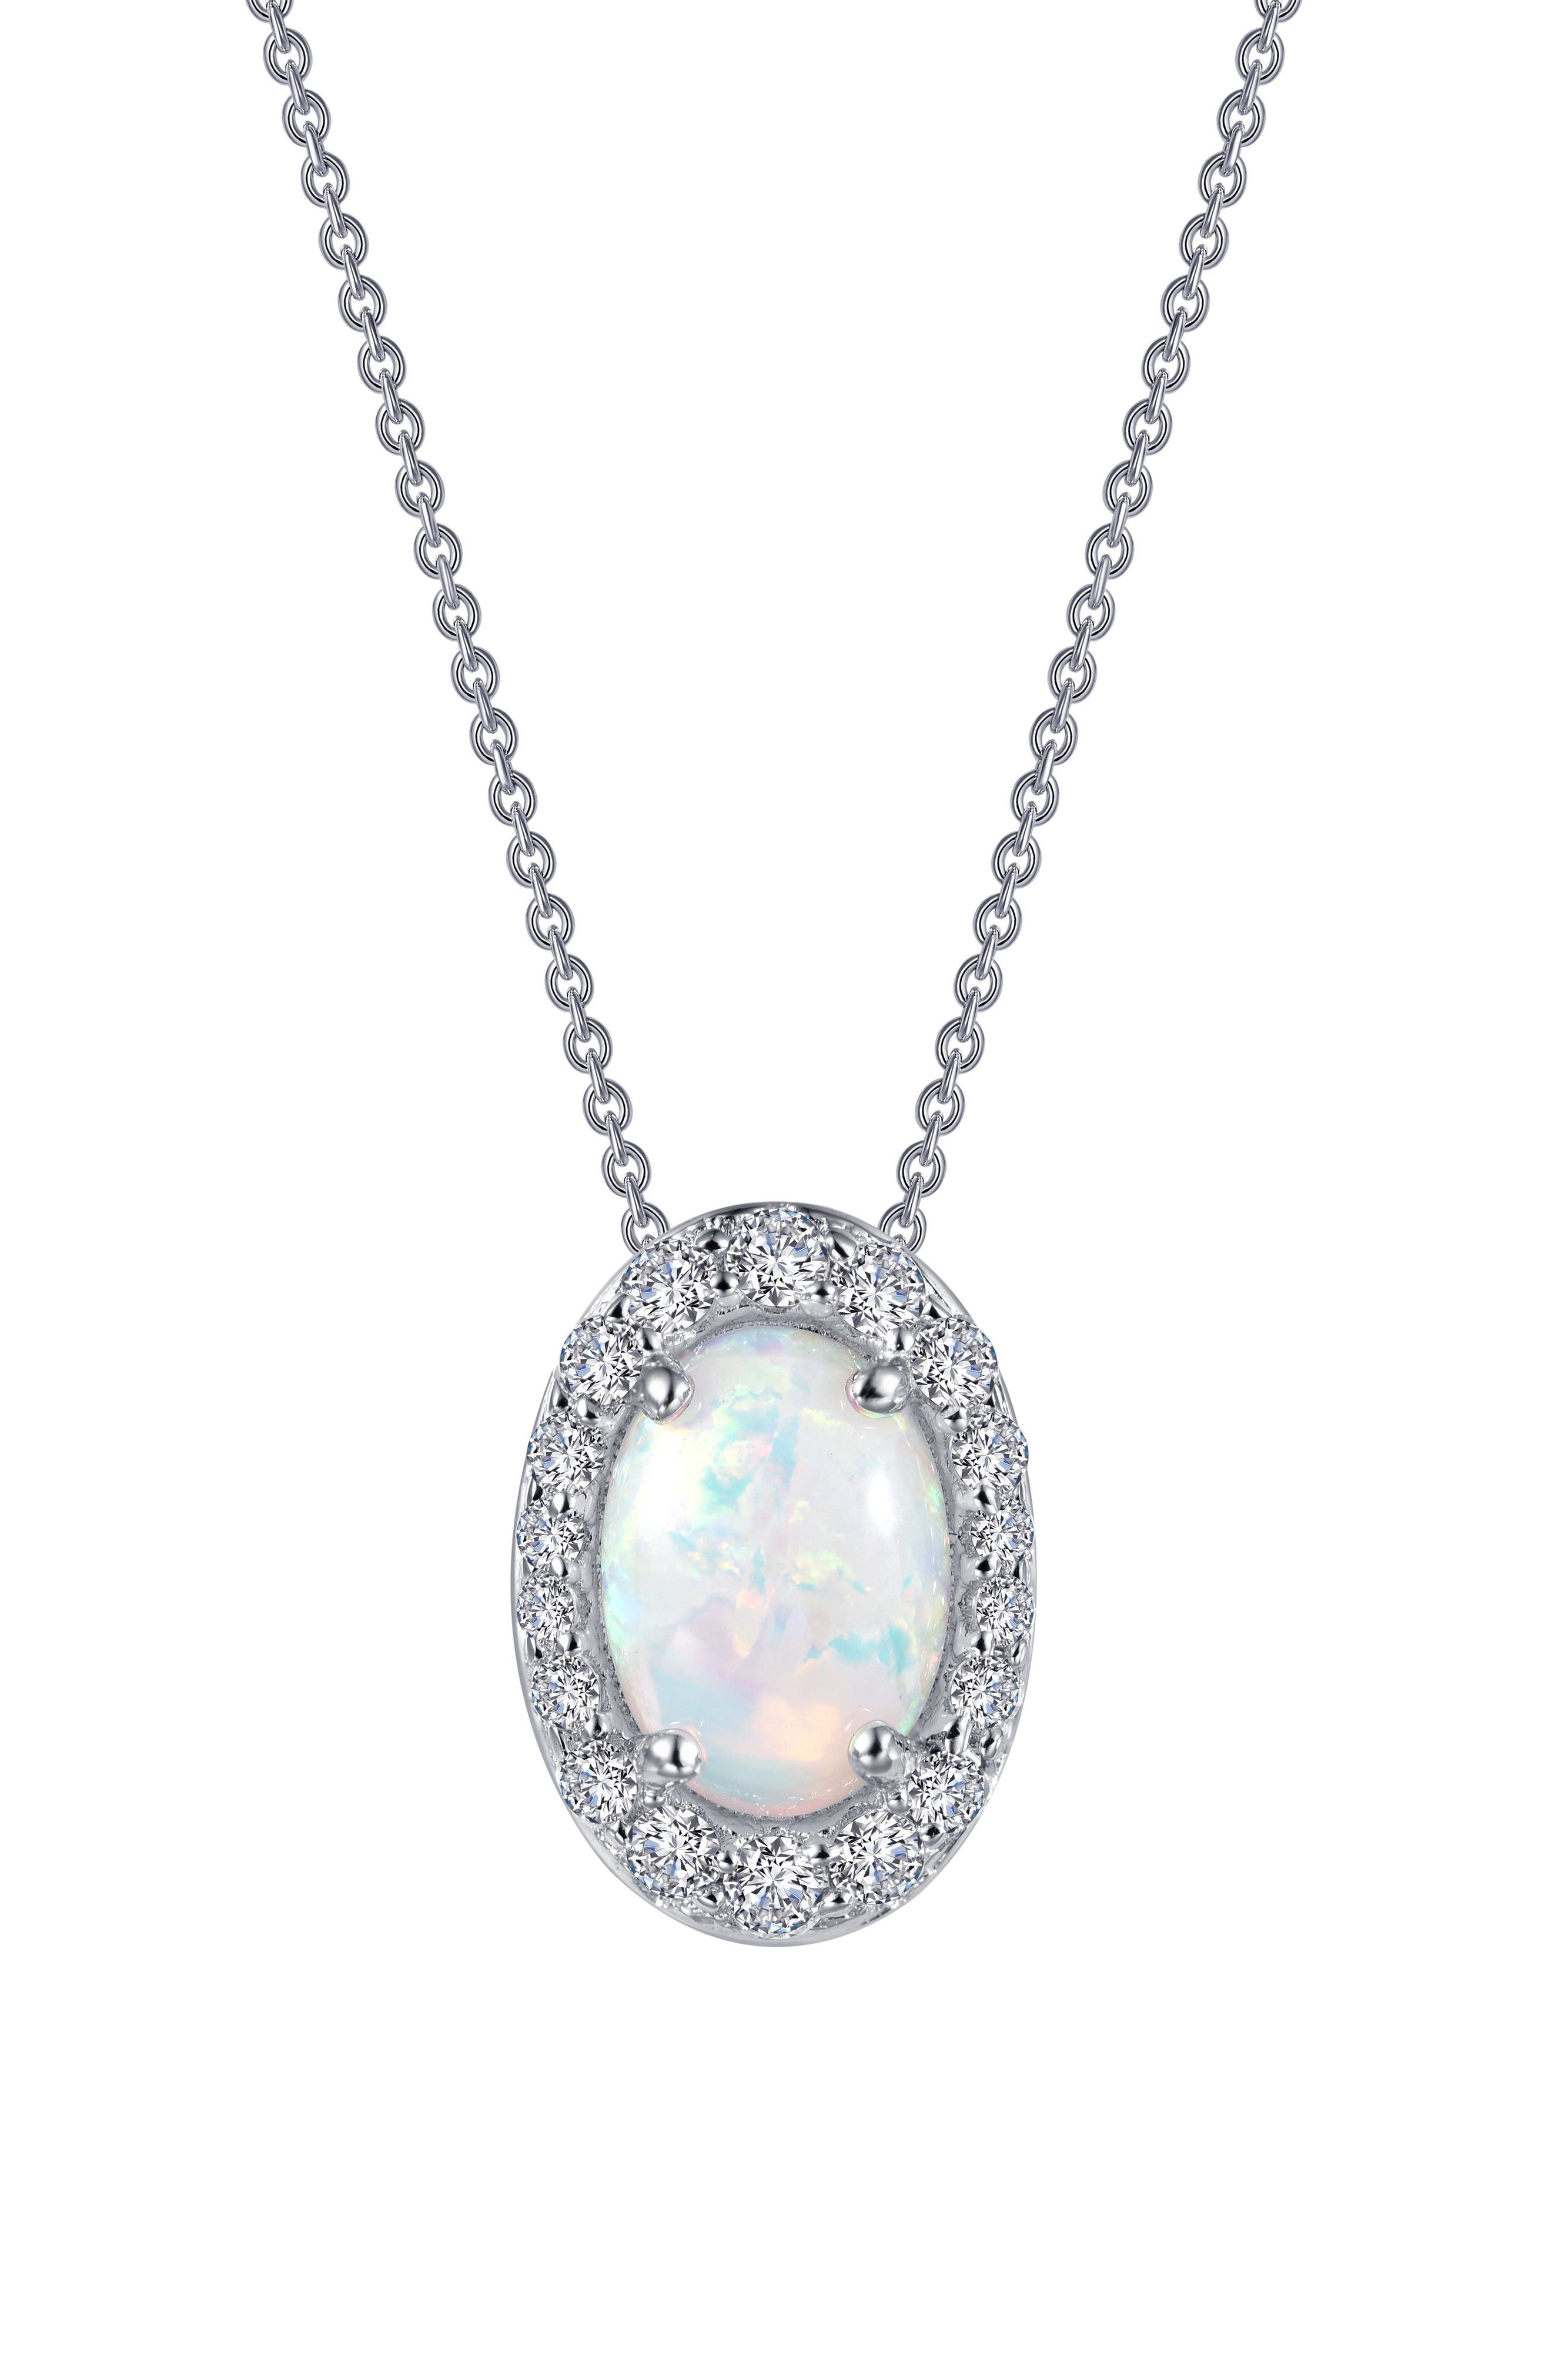 Simulated Opal Halo Pendant Necklace,                             Alternate thumbnail 3, color,                             Silver/ Opal/ Clear